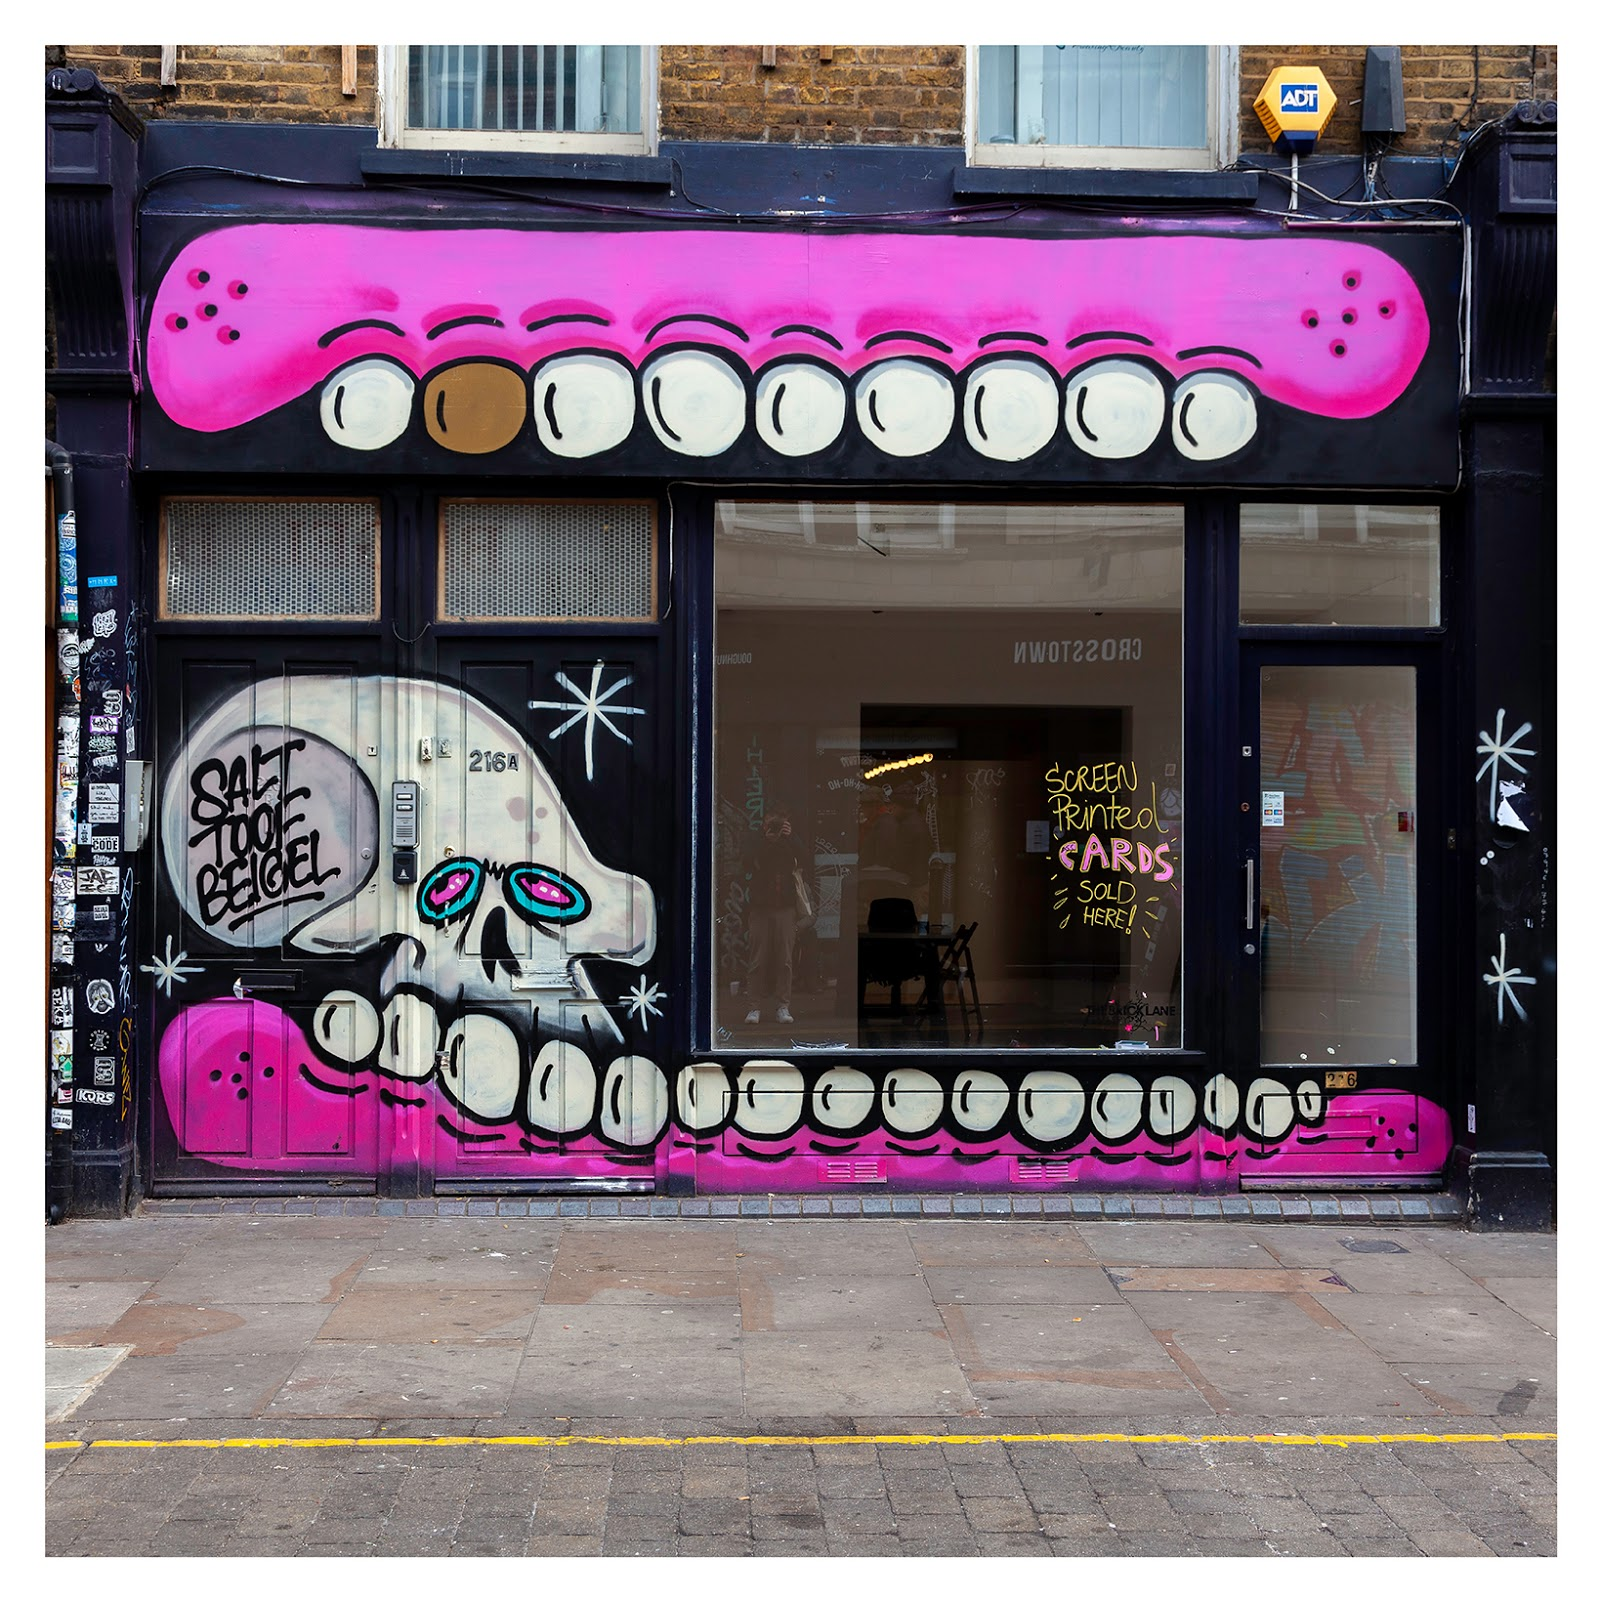 Sweet Toof, Street Art Mural on Brick Lane by artist Sweet Toof